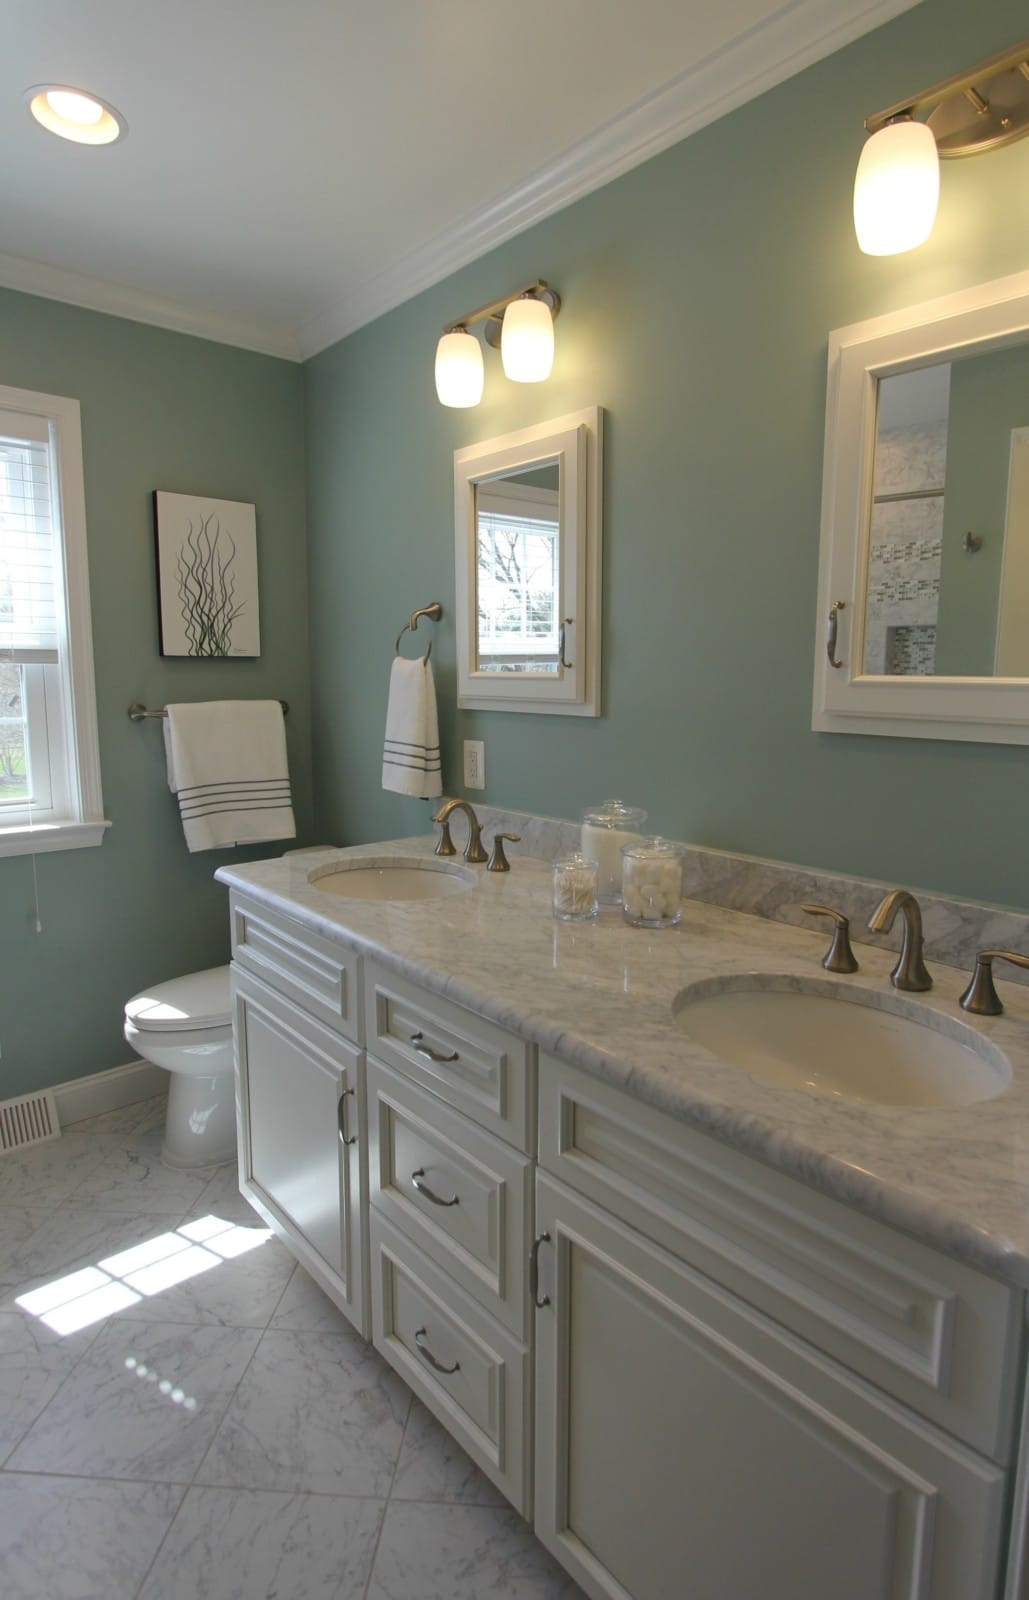 Home Marble Bathroom Remodel in Sage Green